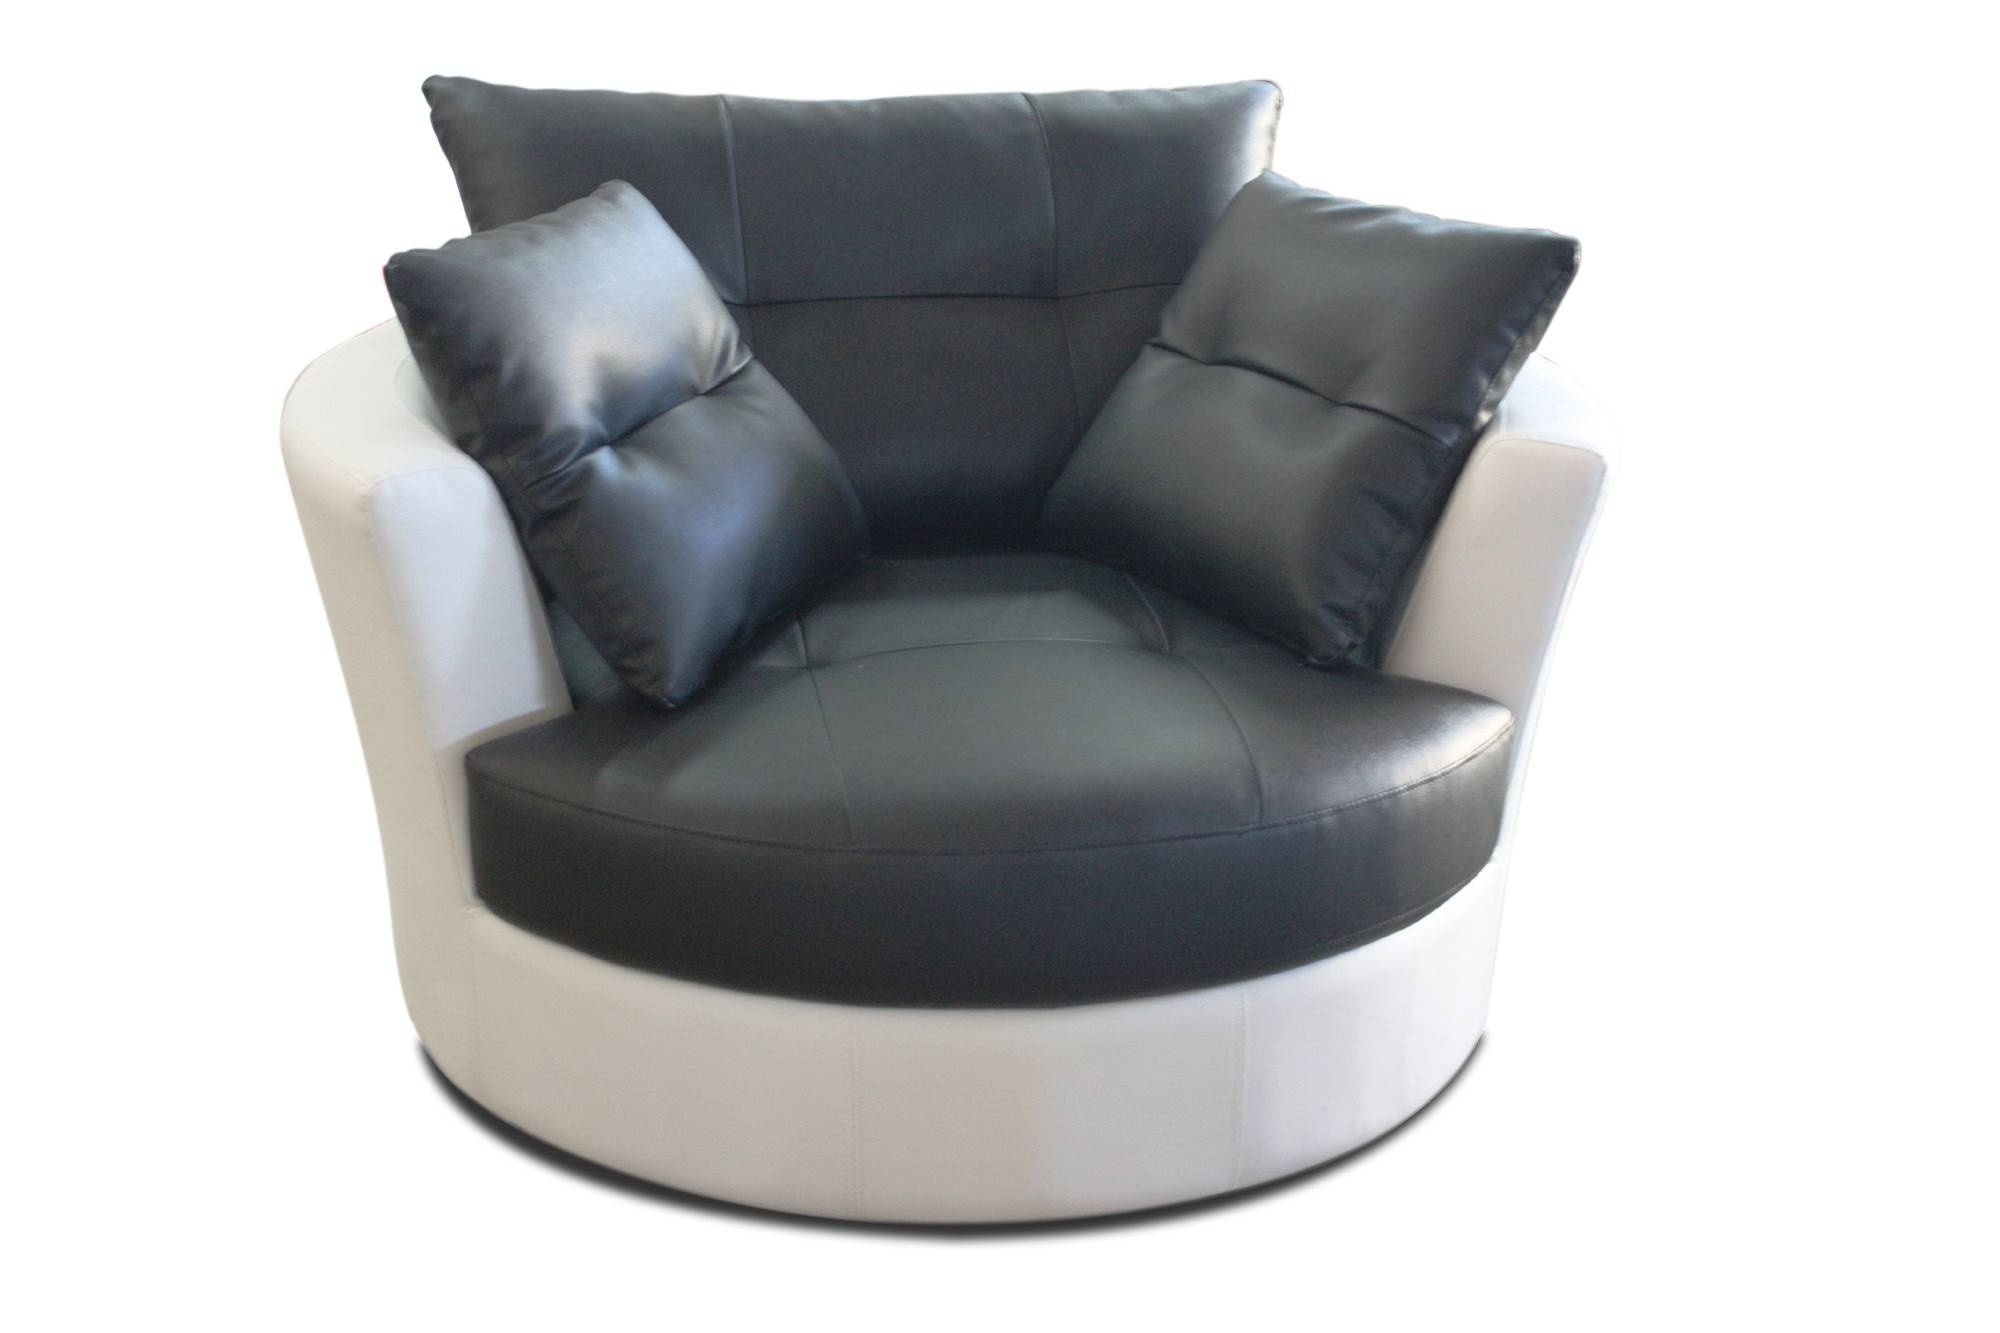 Lovely Swivel Sofa Chair 45 On Living Room Sofa Inspiration With throughout Cuddler Swivel Sofa Chairs (Image 14 of 30)